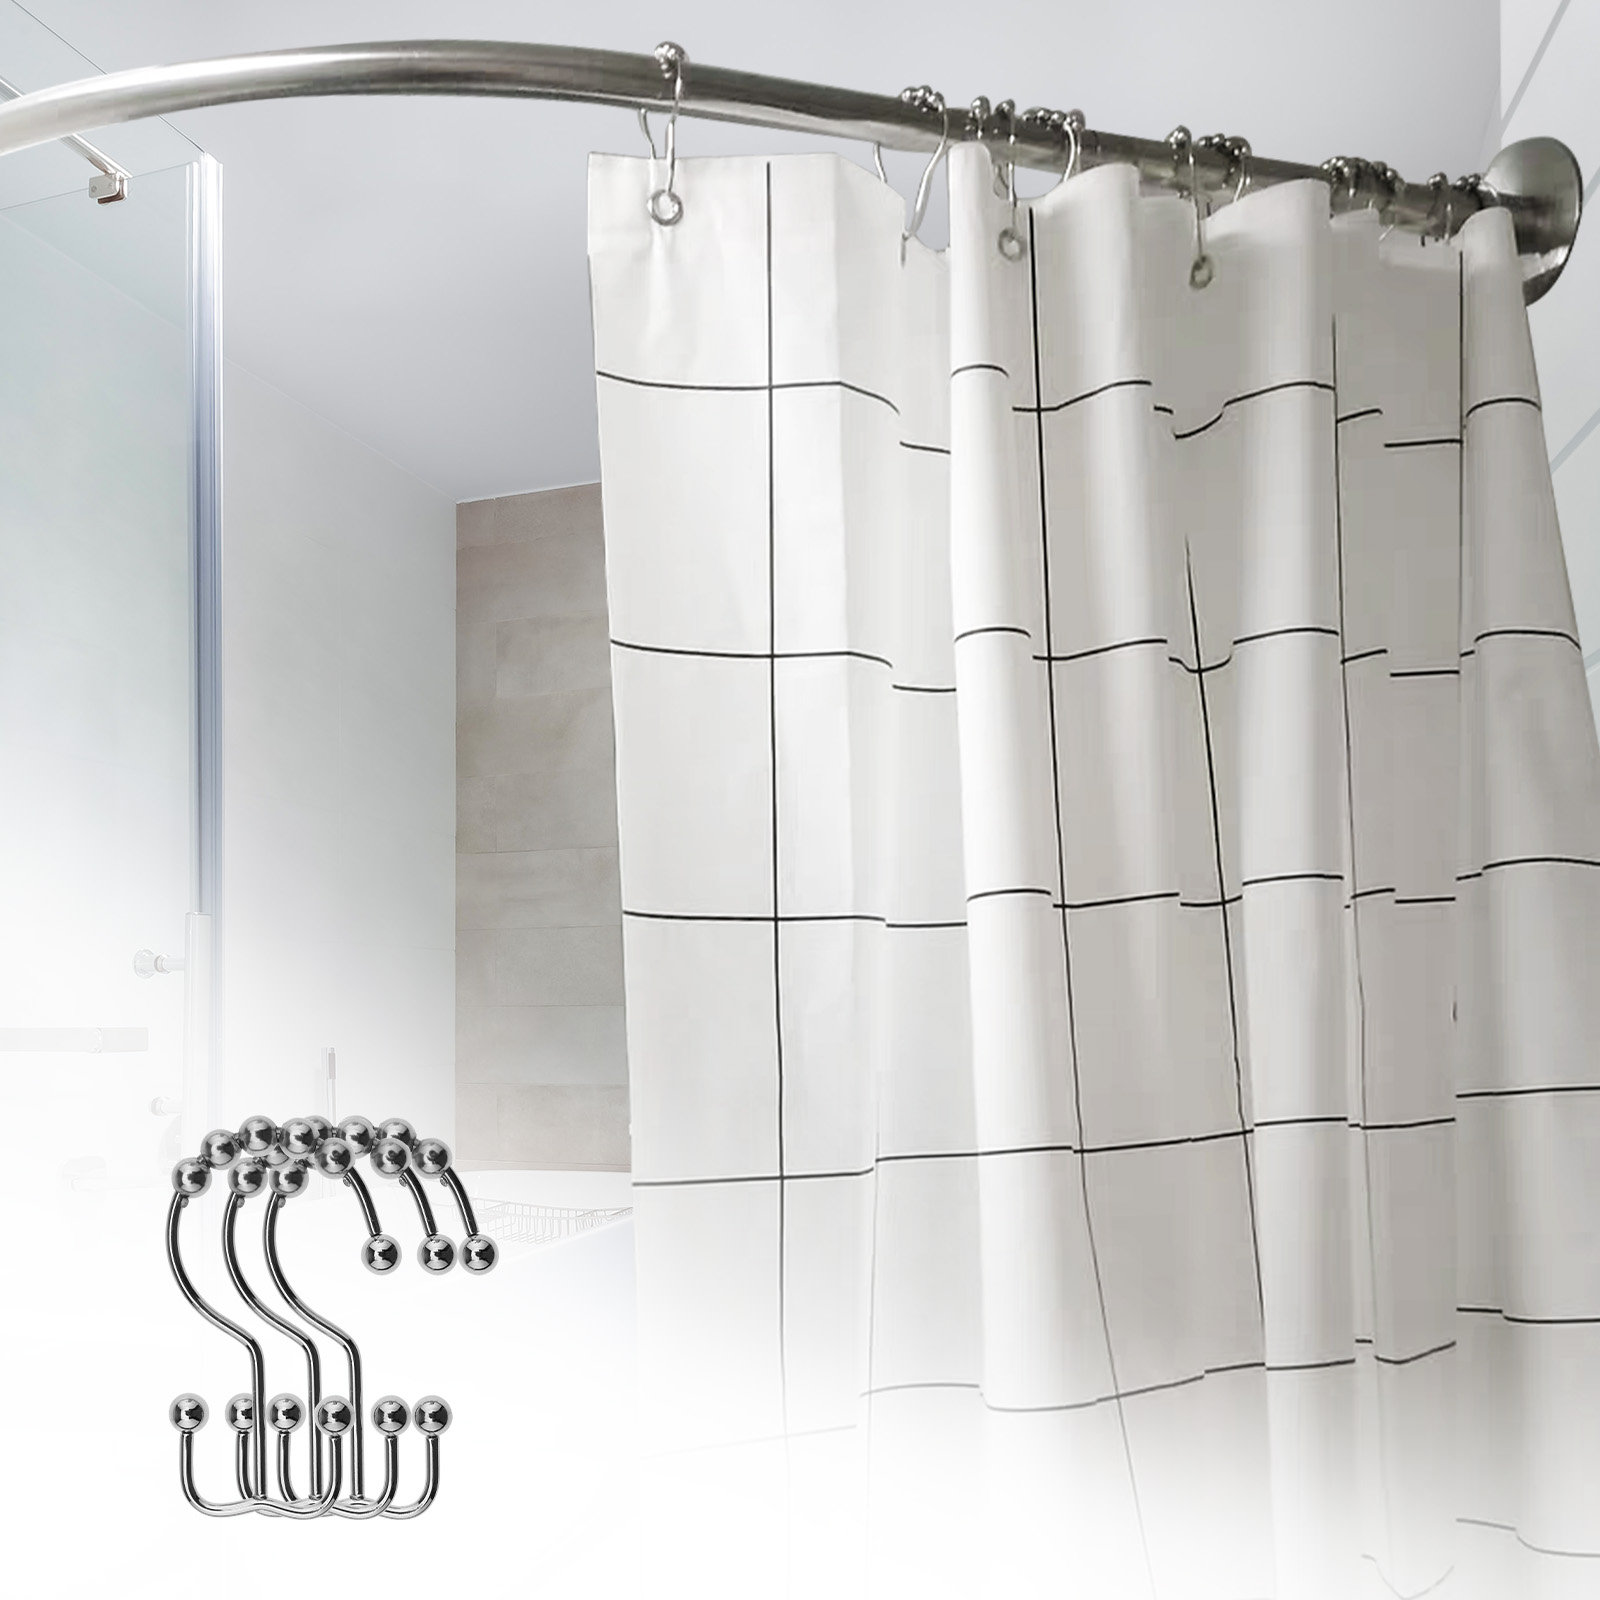 Details About 12pcs Spherical Balls Double Shower Curtain Hooks Rings Set Nickel Plated